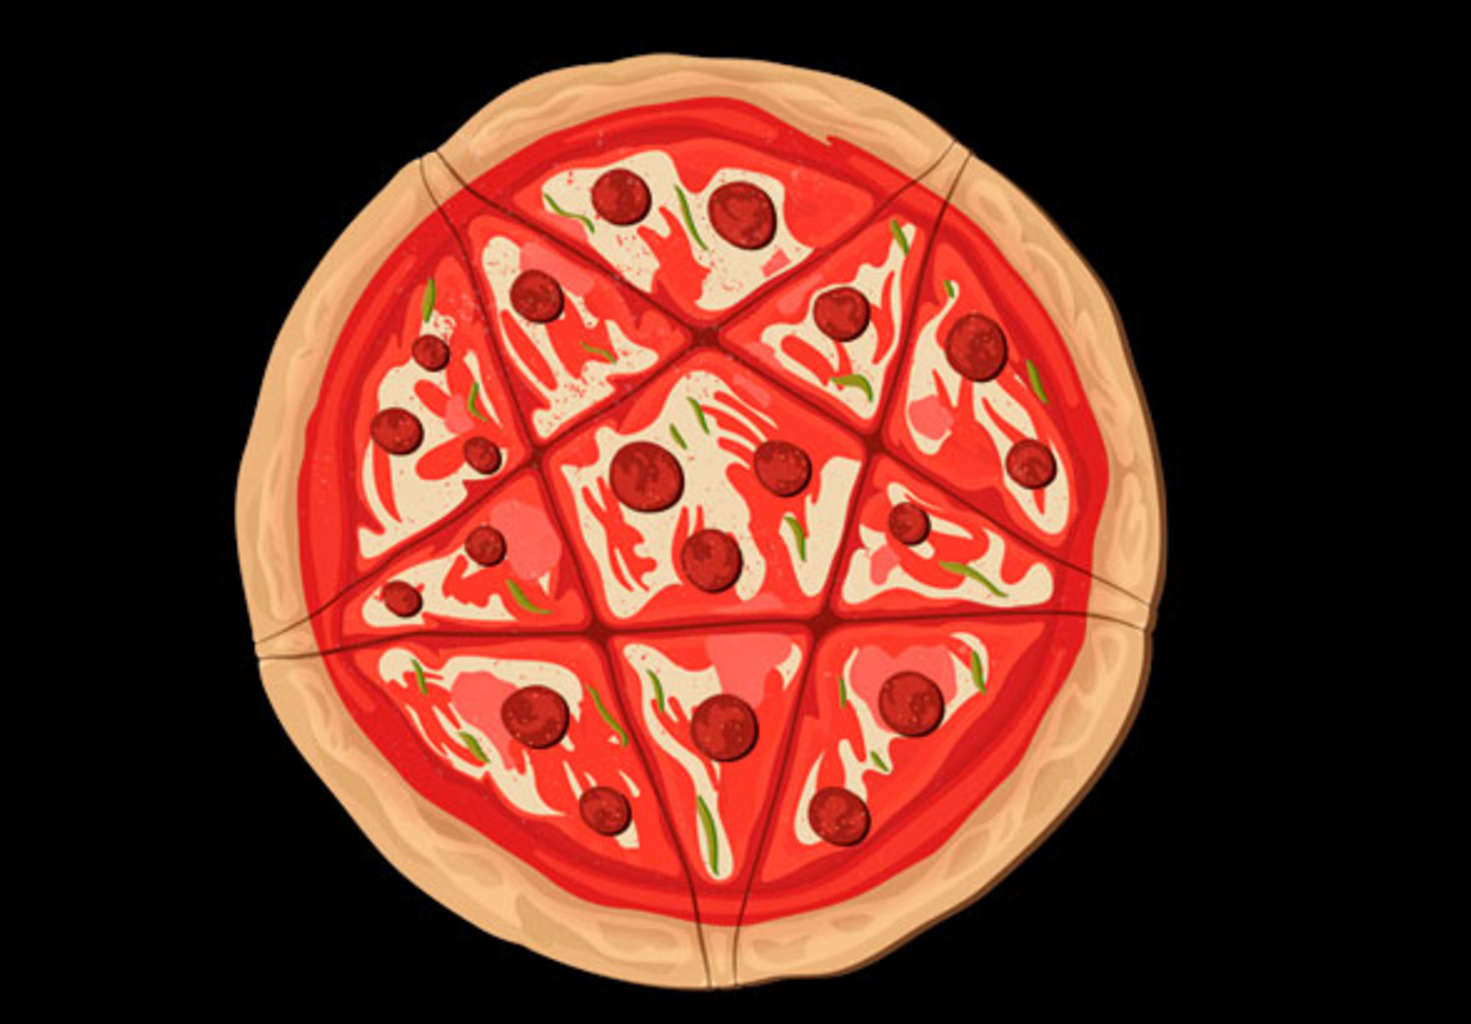 teeVillain: Pizzagram